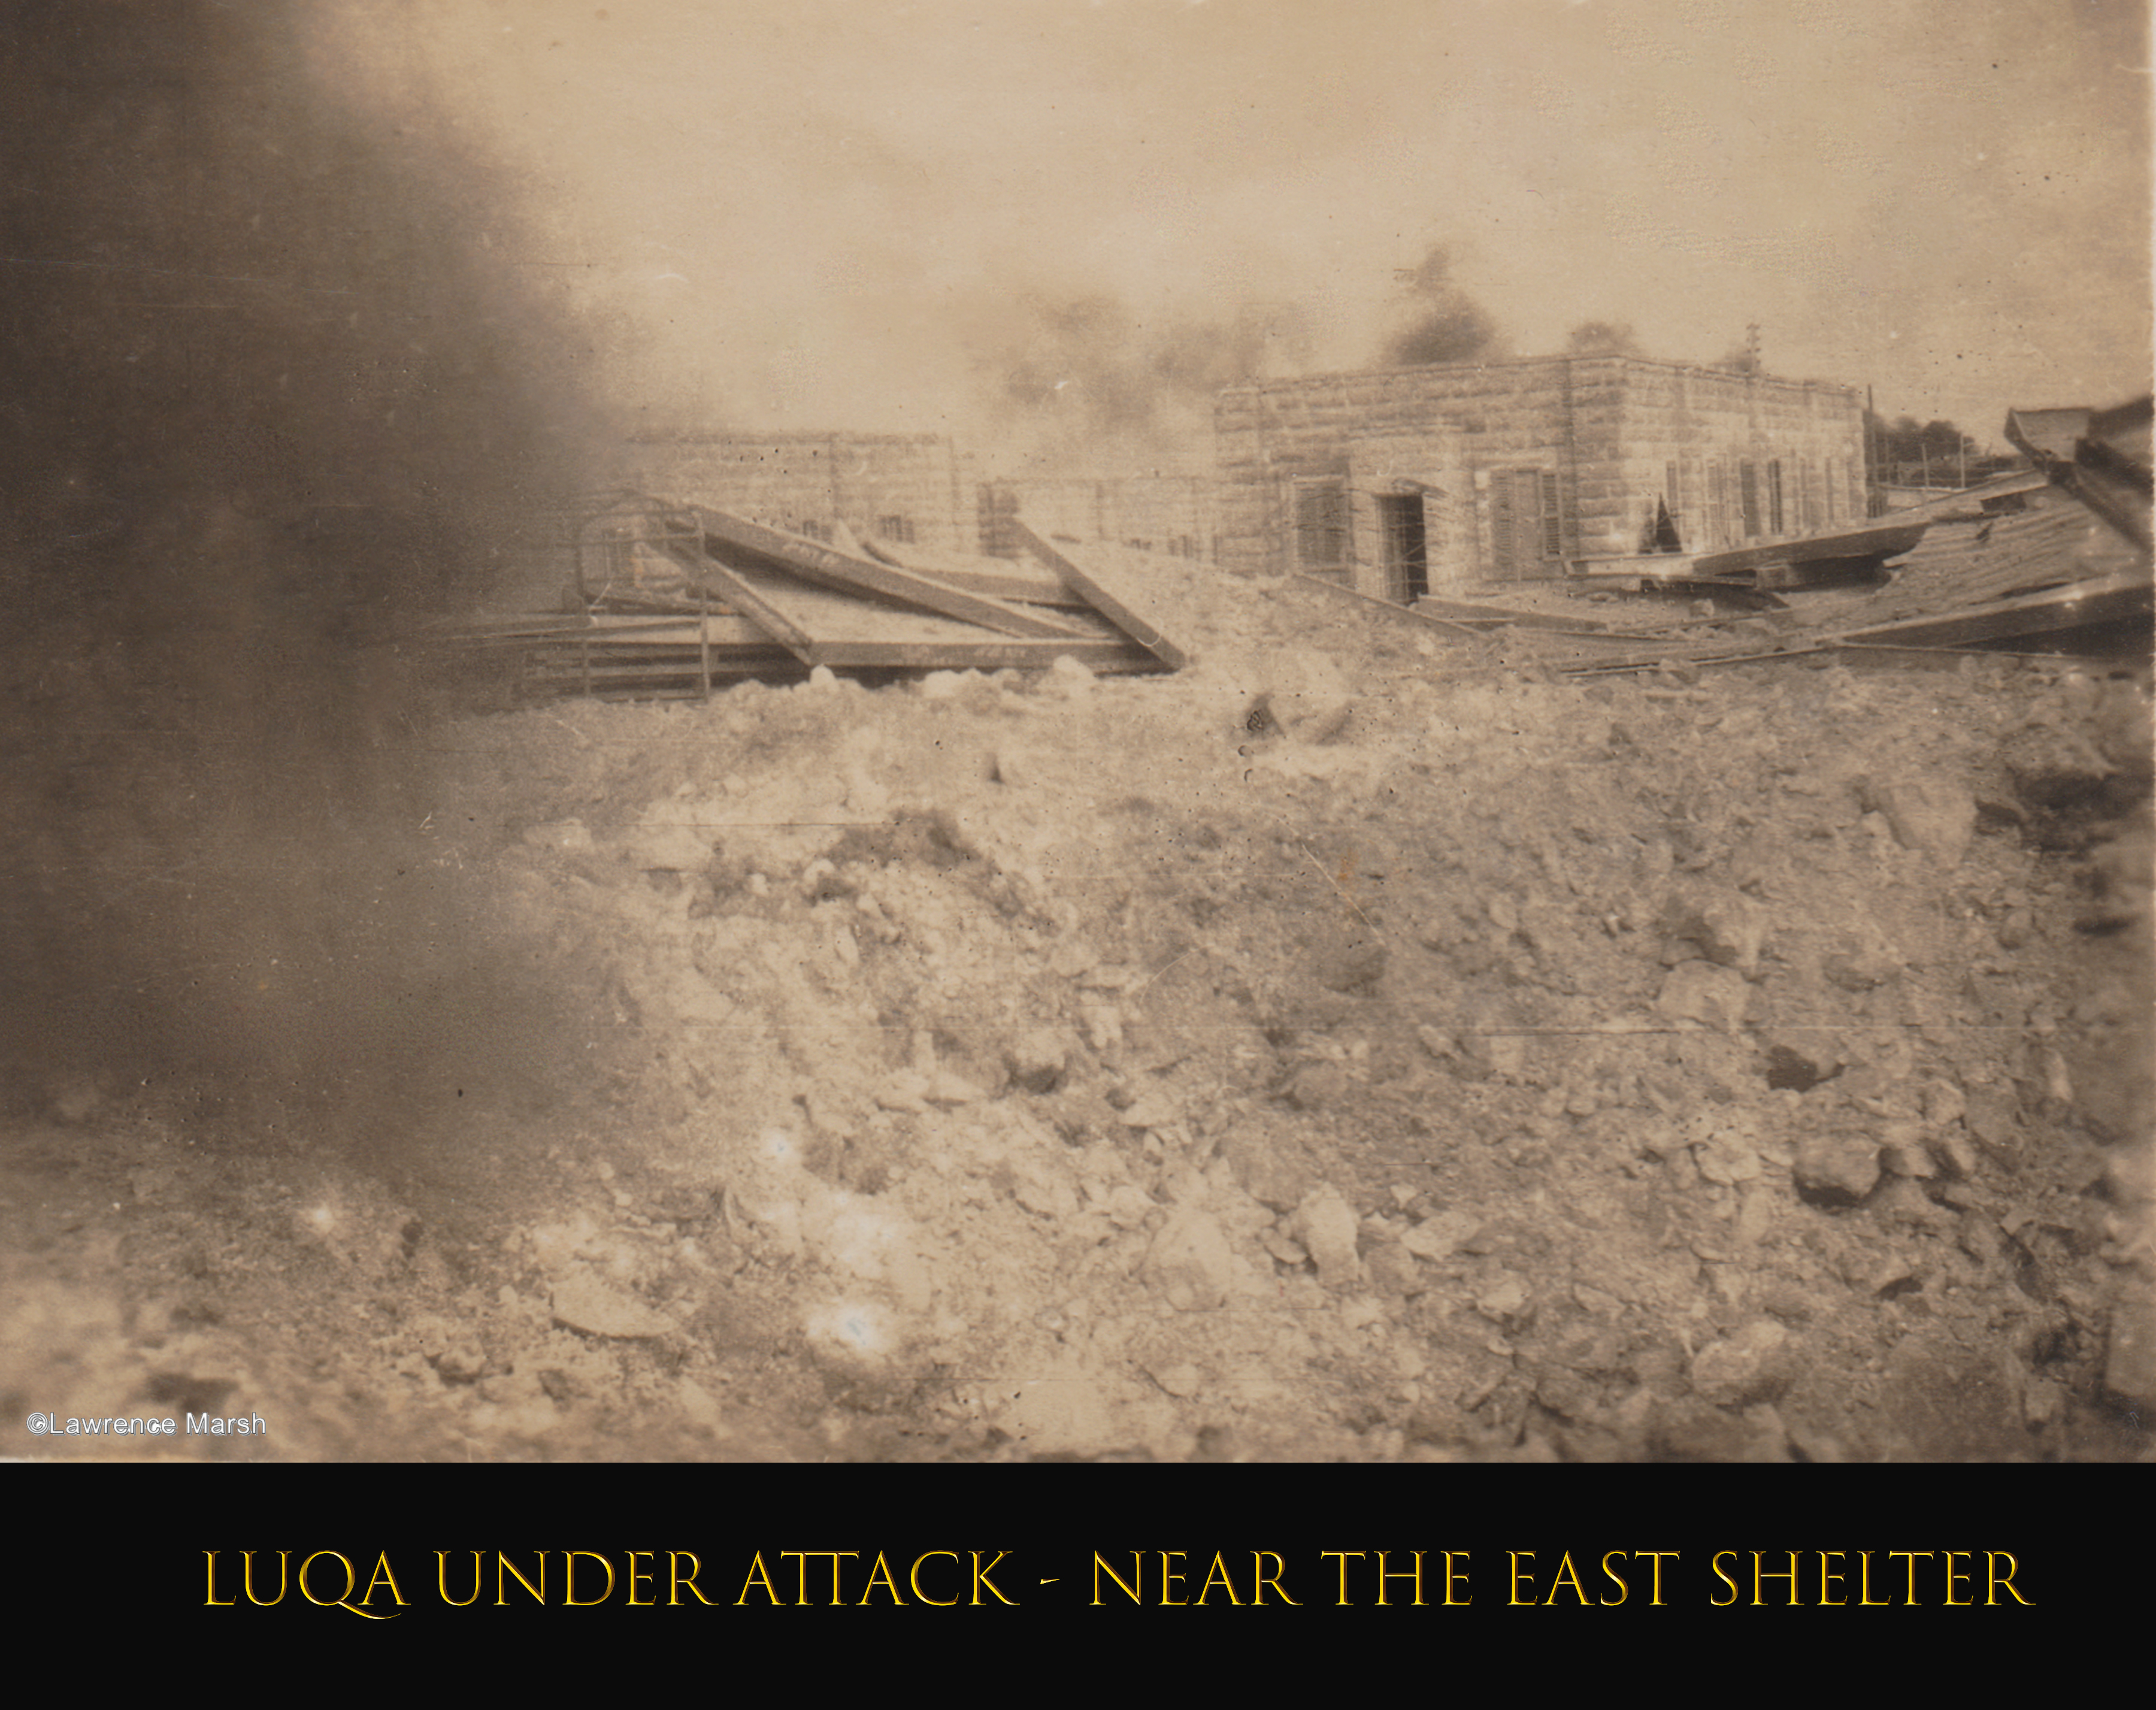 Luqa Under Attack - Near The East Shelter